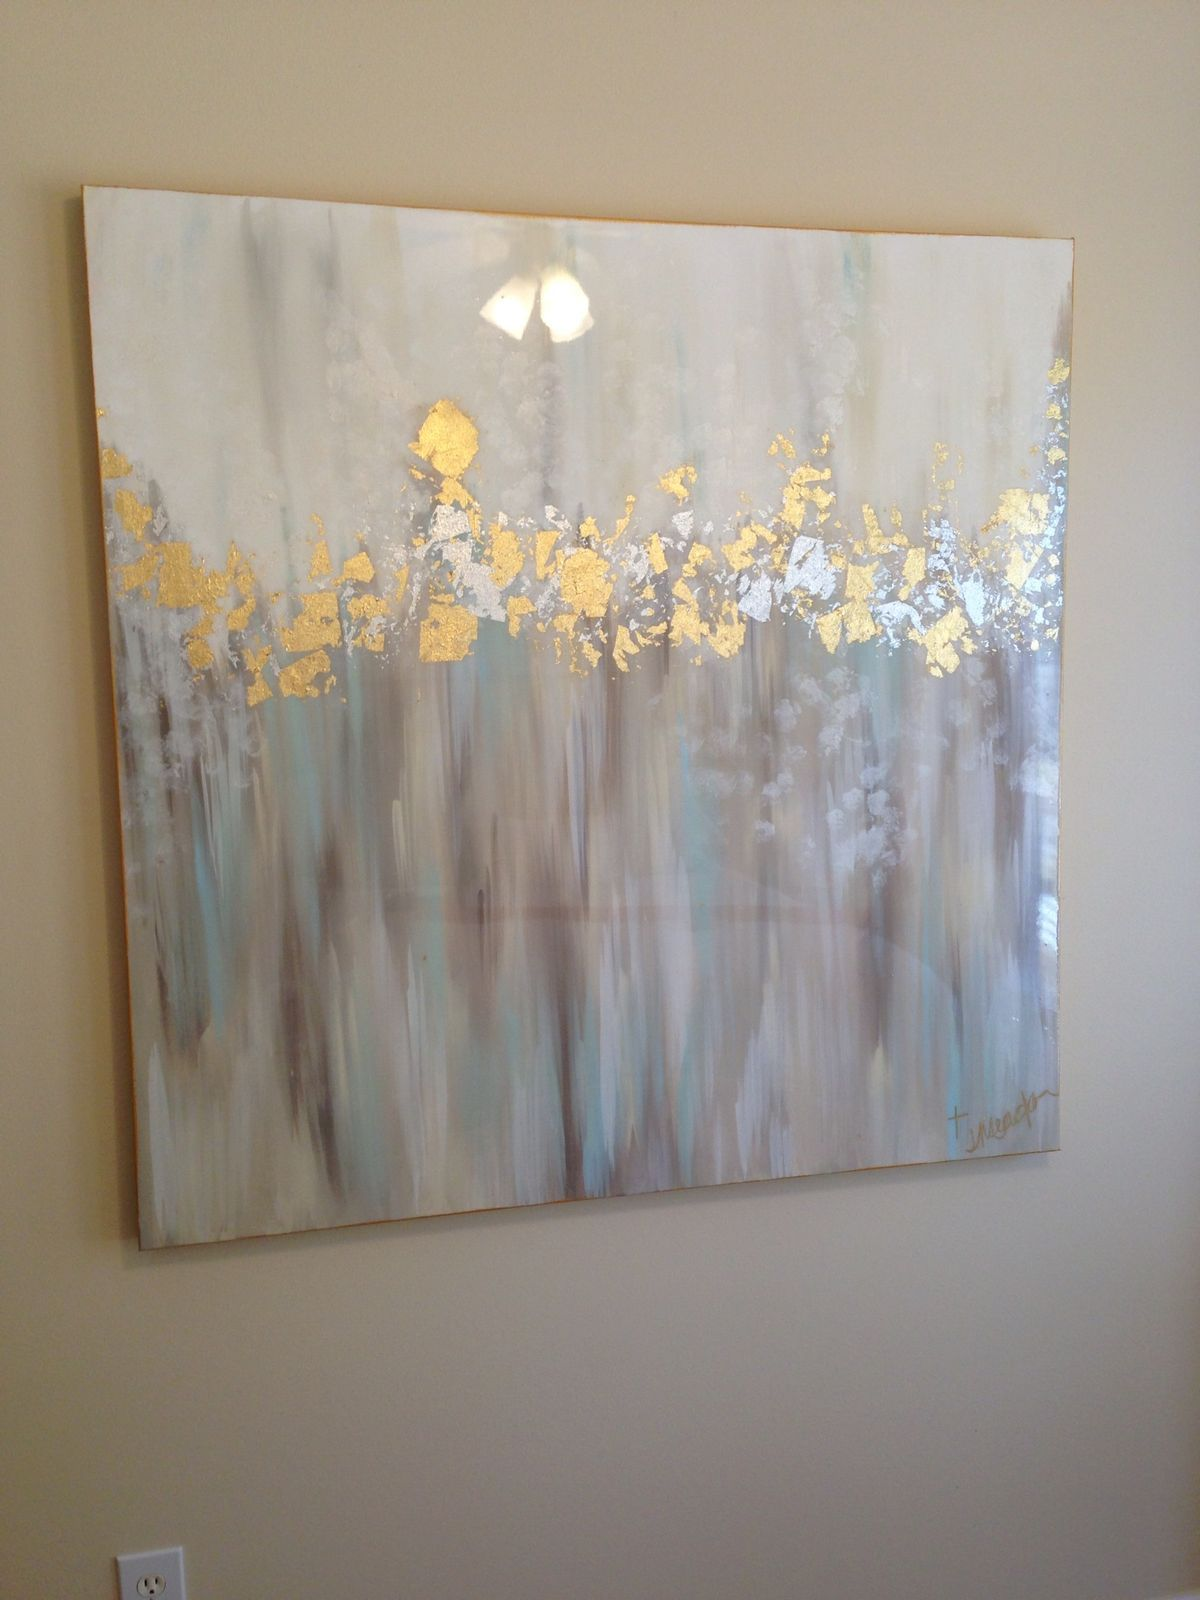 Abstract Painting How To White Gray Blue Gold And Silver Abstract Art 48x48 By Jenn